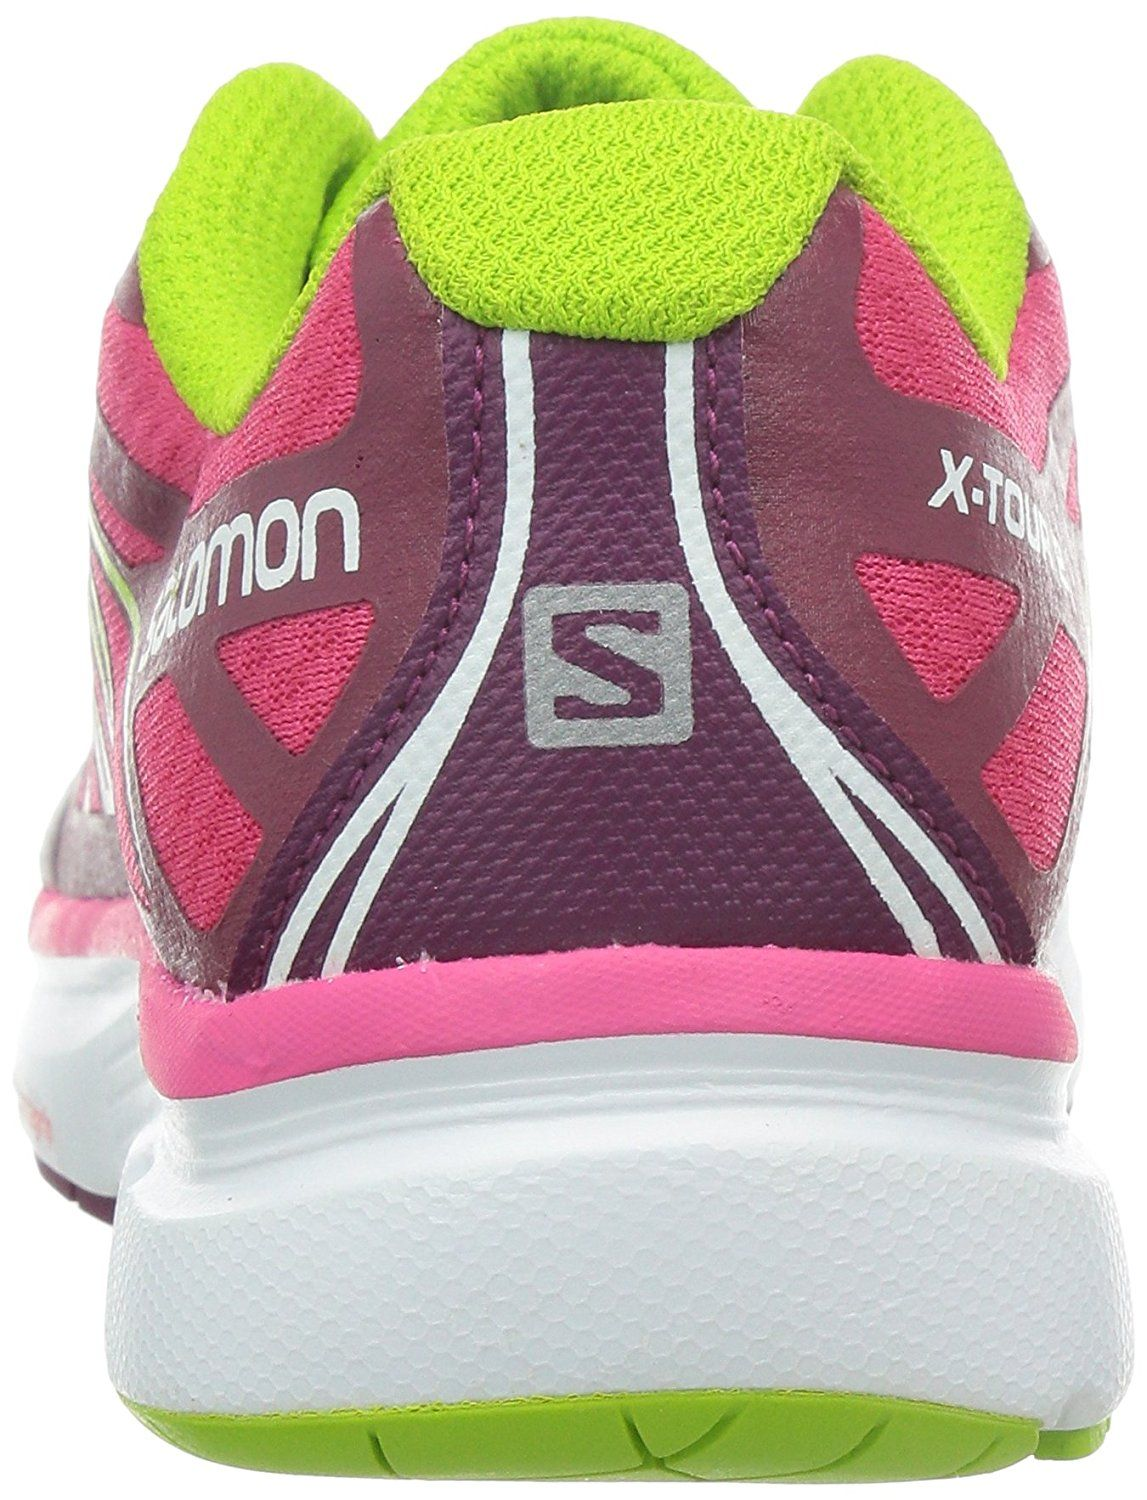 9904640235b6 Salomon X Tour 2 Womens Trail Running Sneakers Shoes     Learn more by  visiting